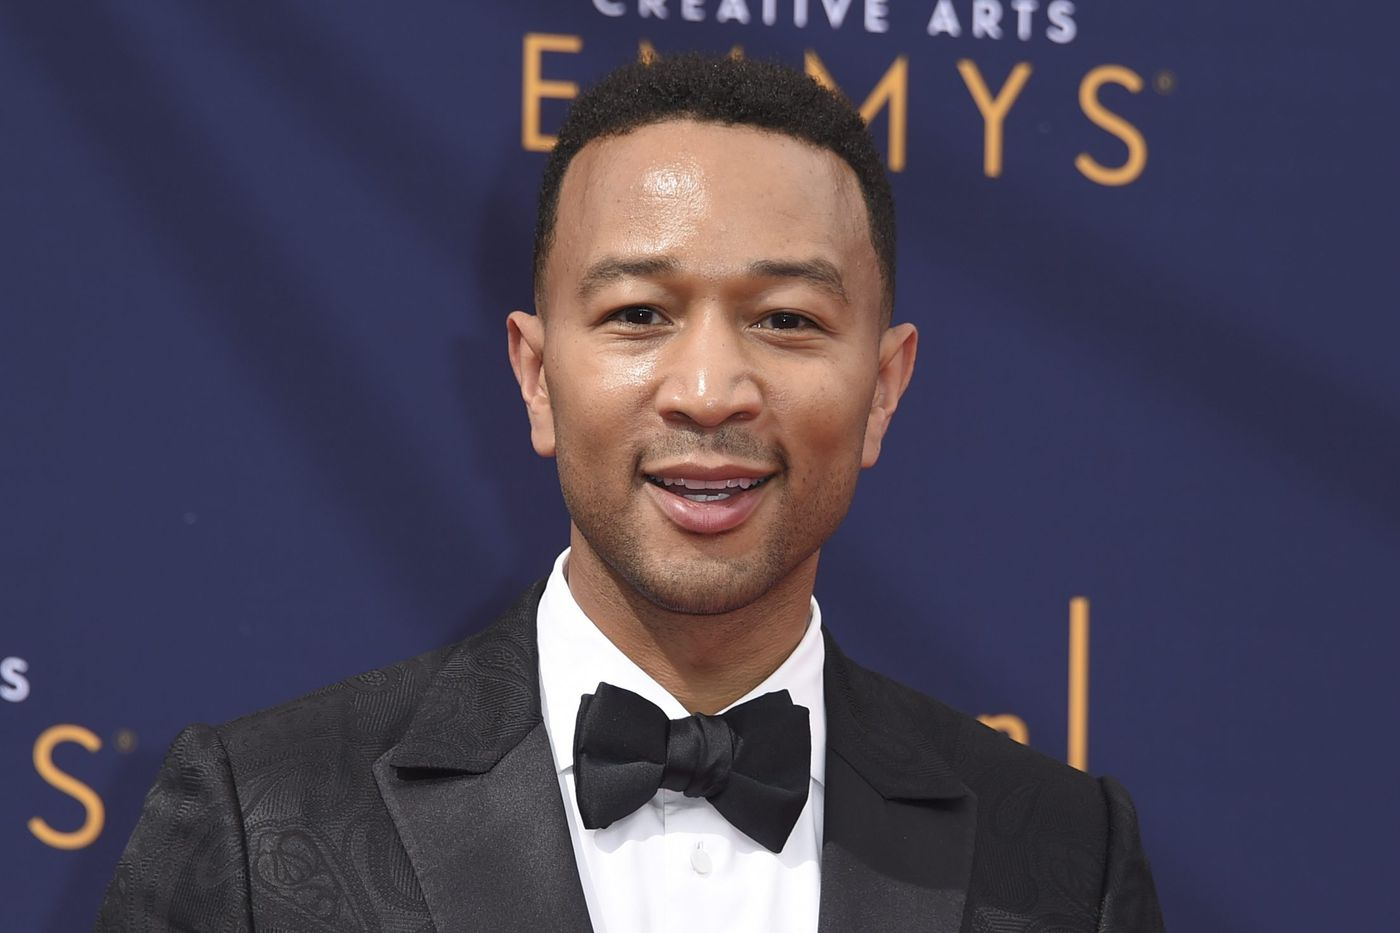 With Emmy win, John Legend joins rare EGOT class